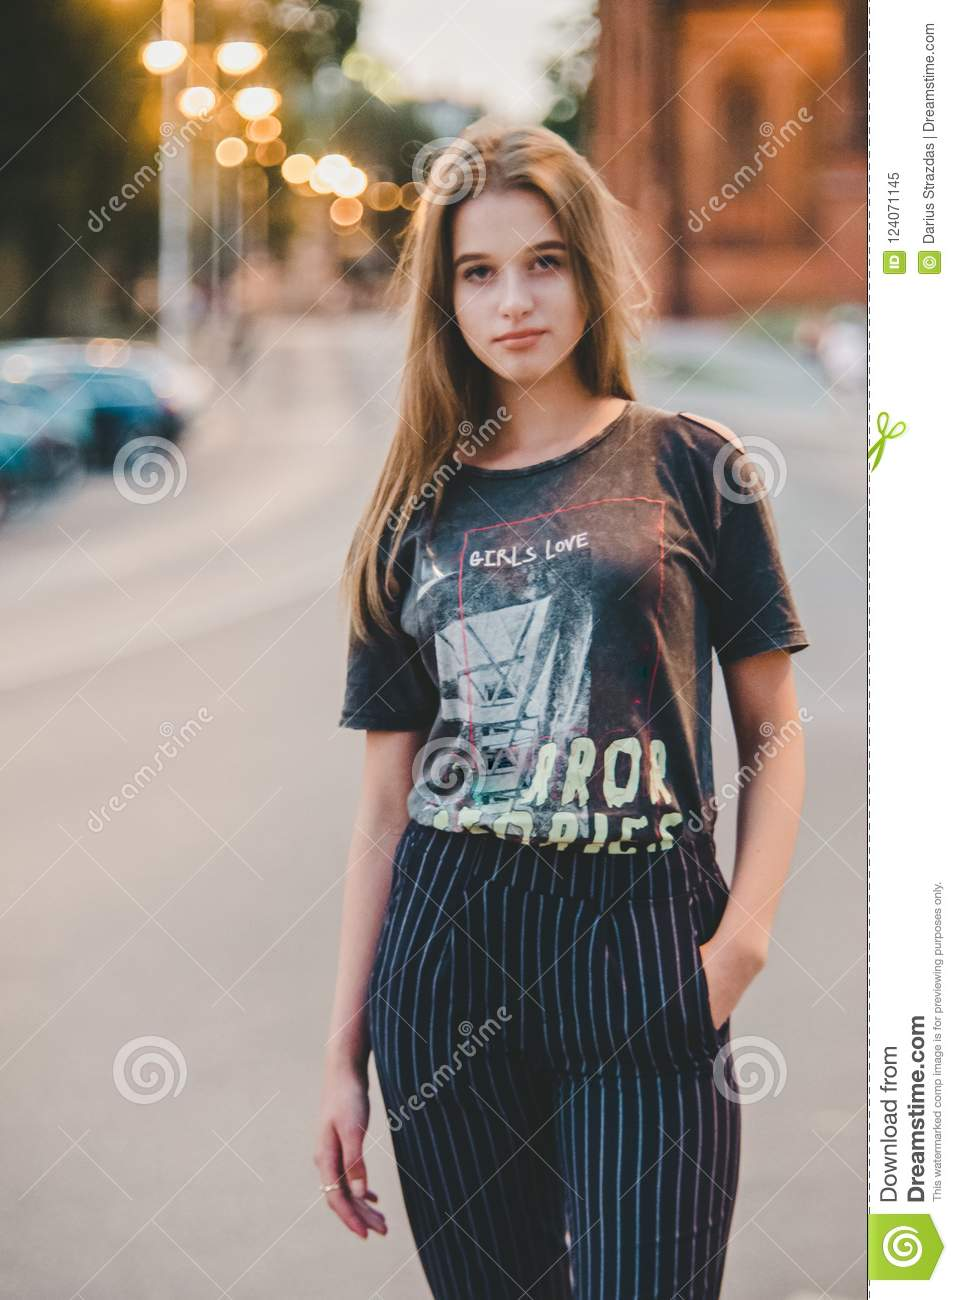 Cool And Confident Teen Girl Posing Stock Image , Image of